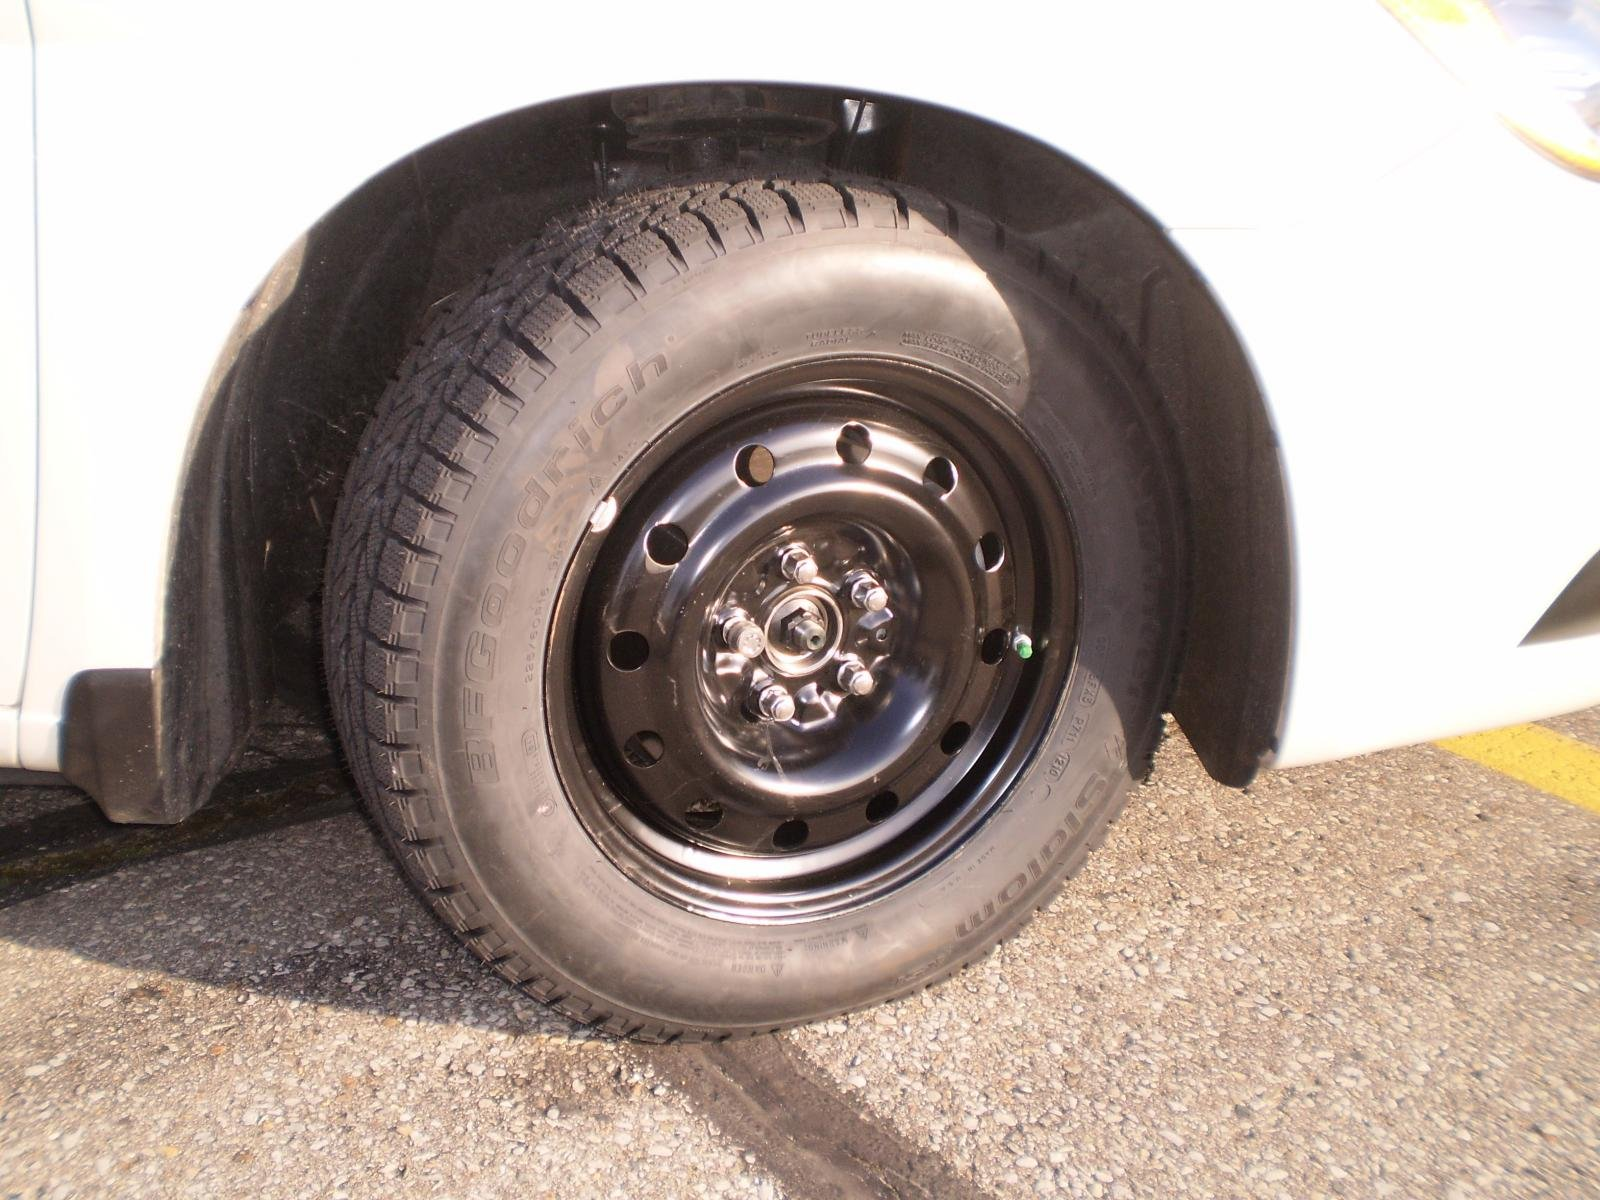 Chrysler 200 Tire Size >> 2012 Chrysler 200 Tire Size Upcoming Auto Car Release Date